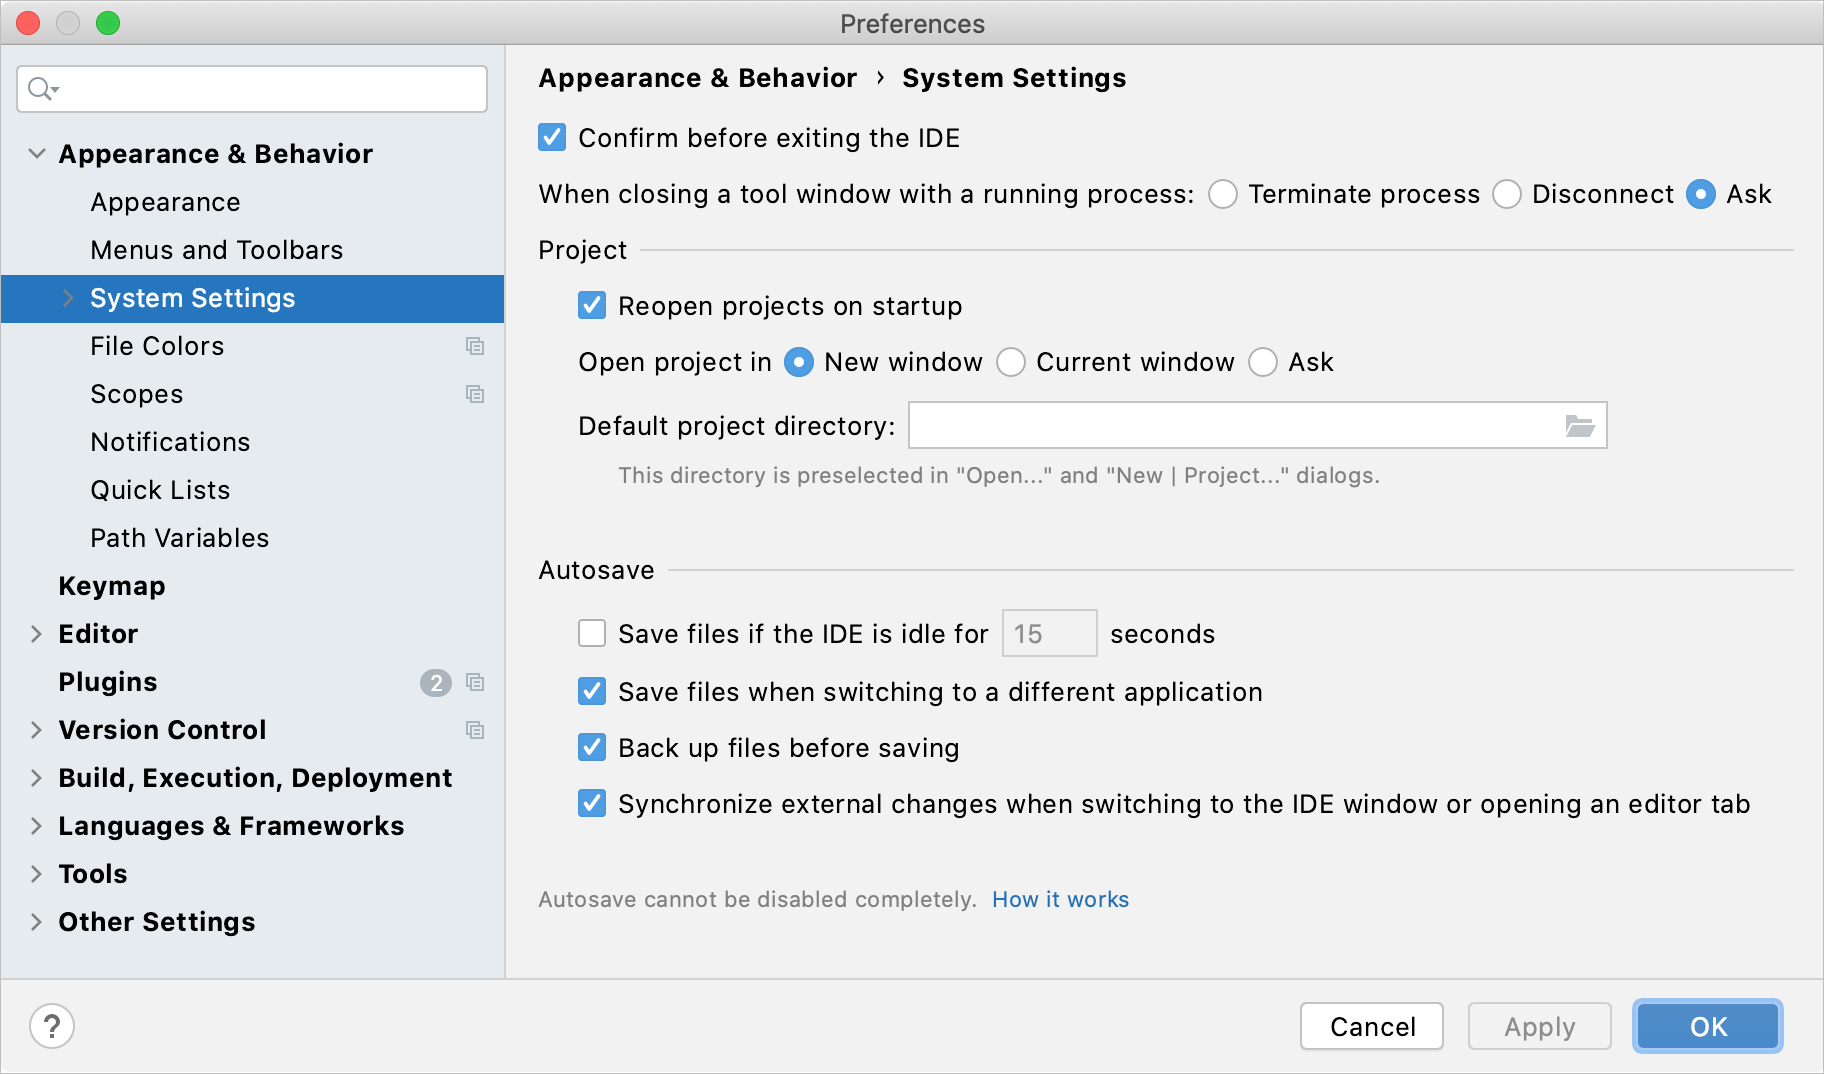 Configuring the system settings